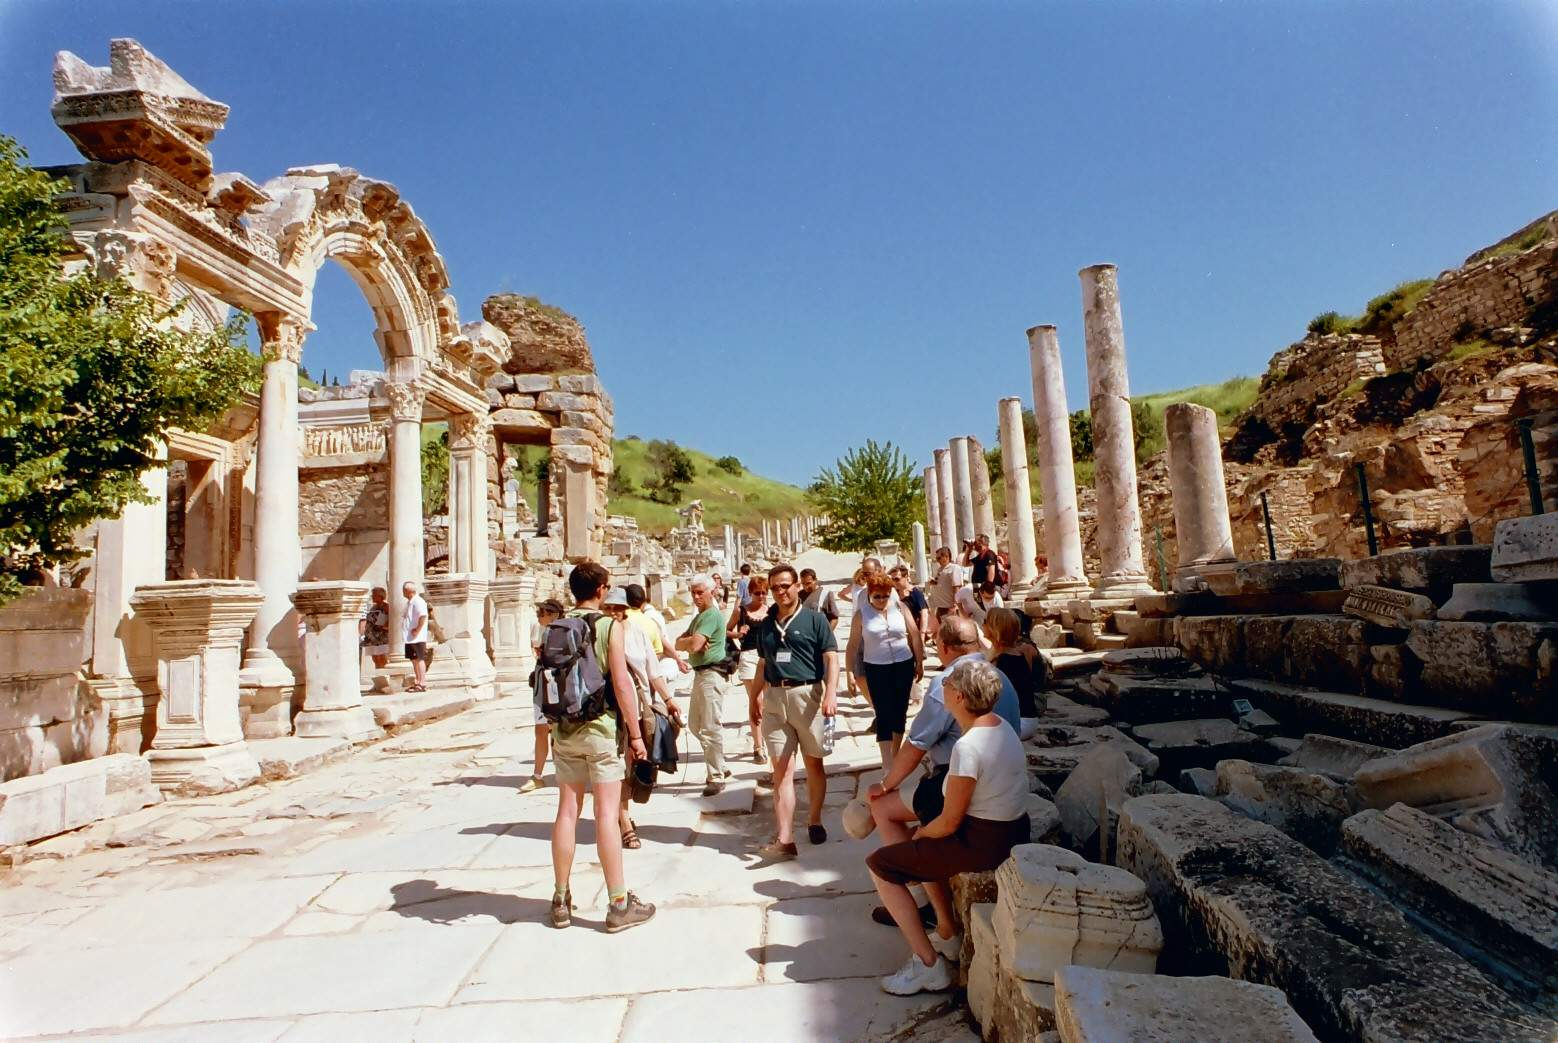 ephesus-pamukkale-tour-by-bus-2.jpg